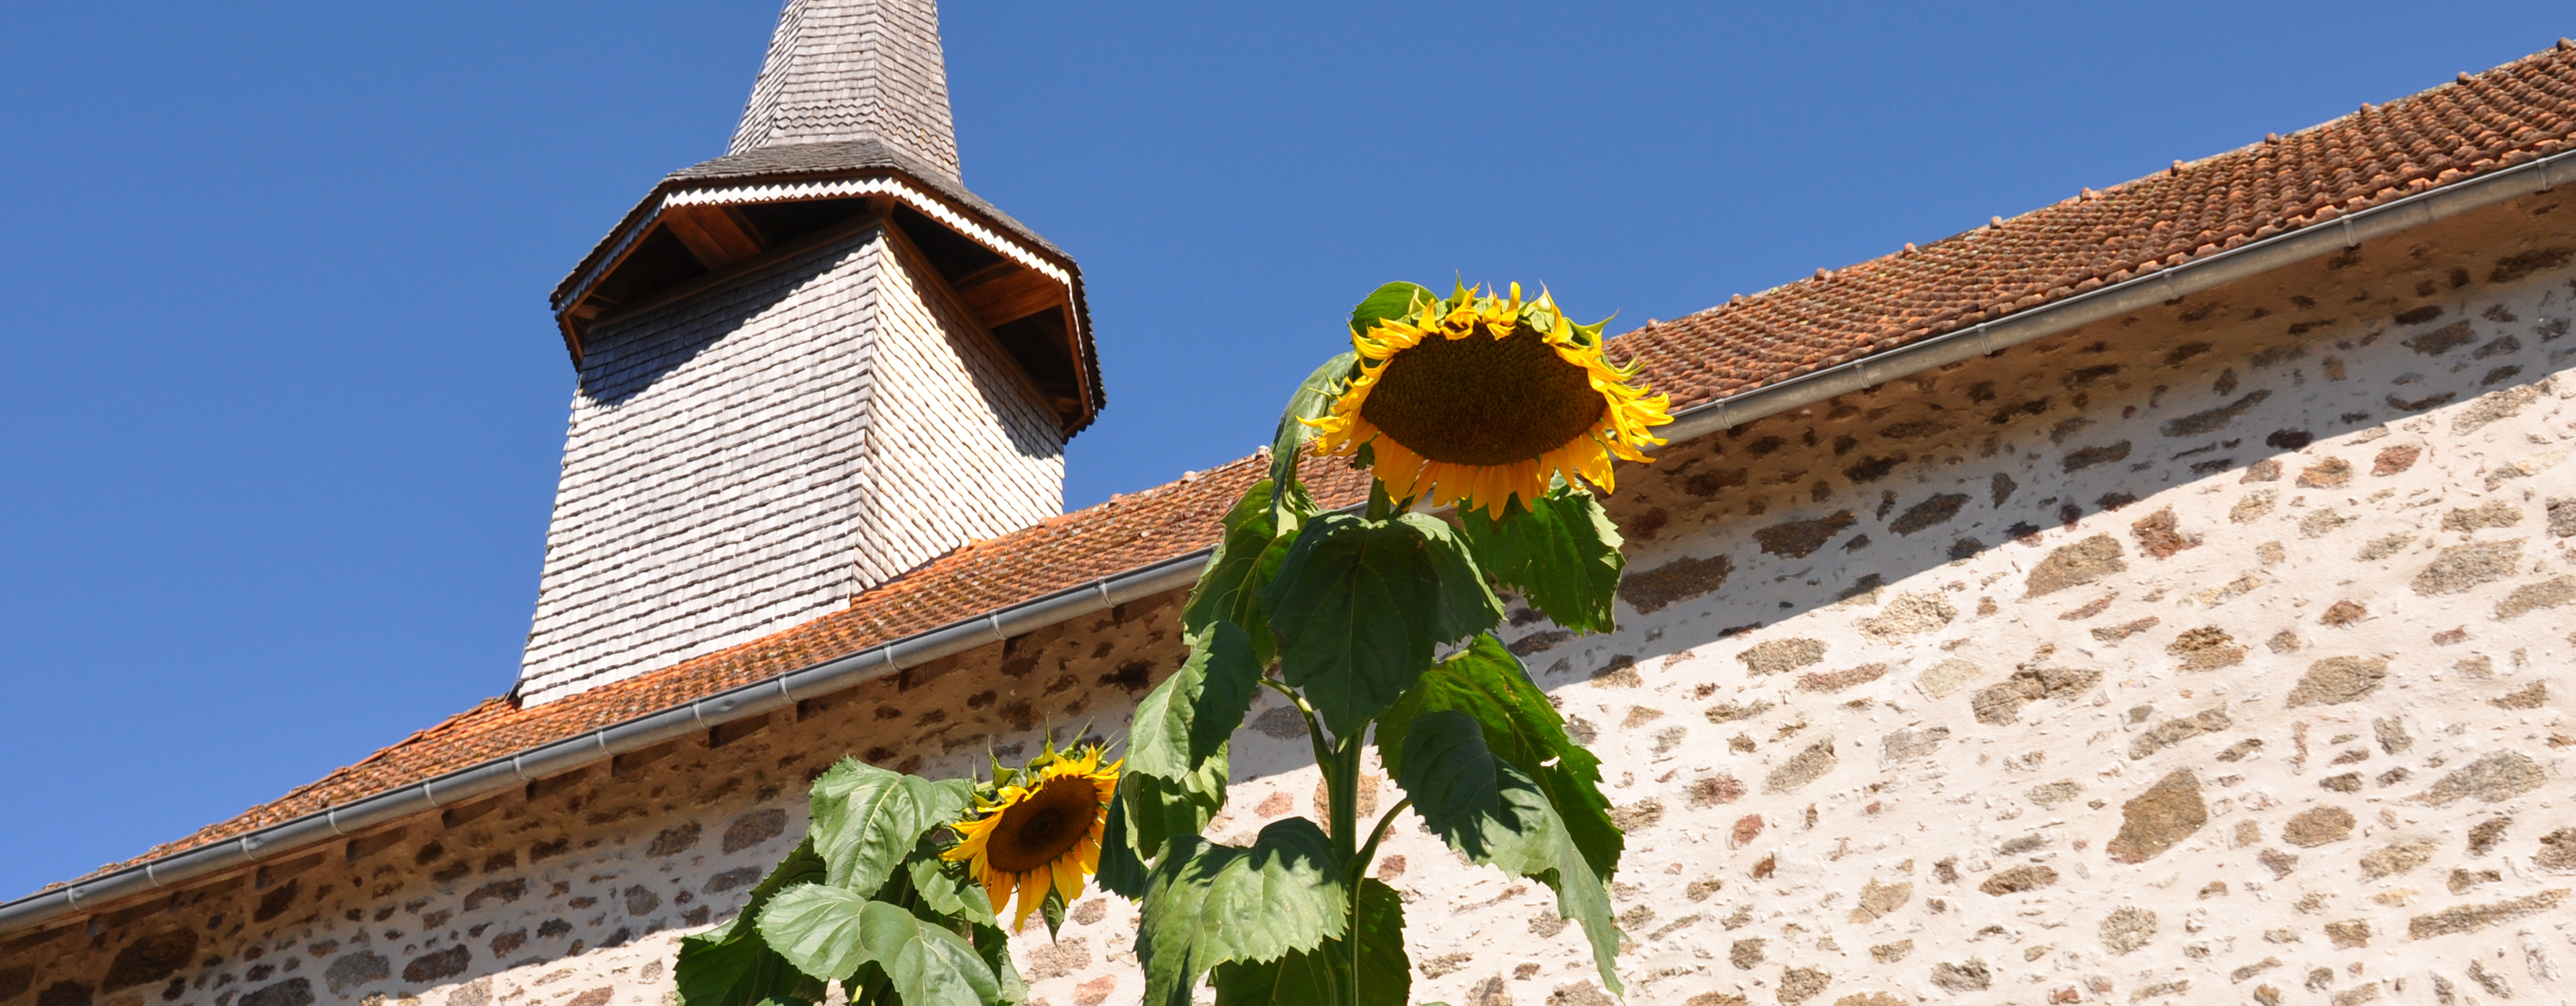 Sunflowers growing in front of church at Etang de Azat-Chatenet fishing lake in France